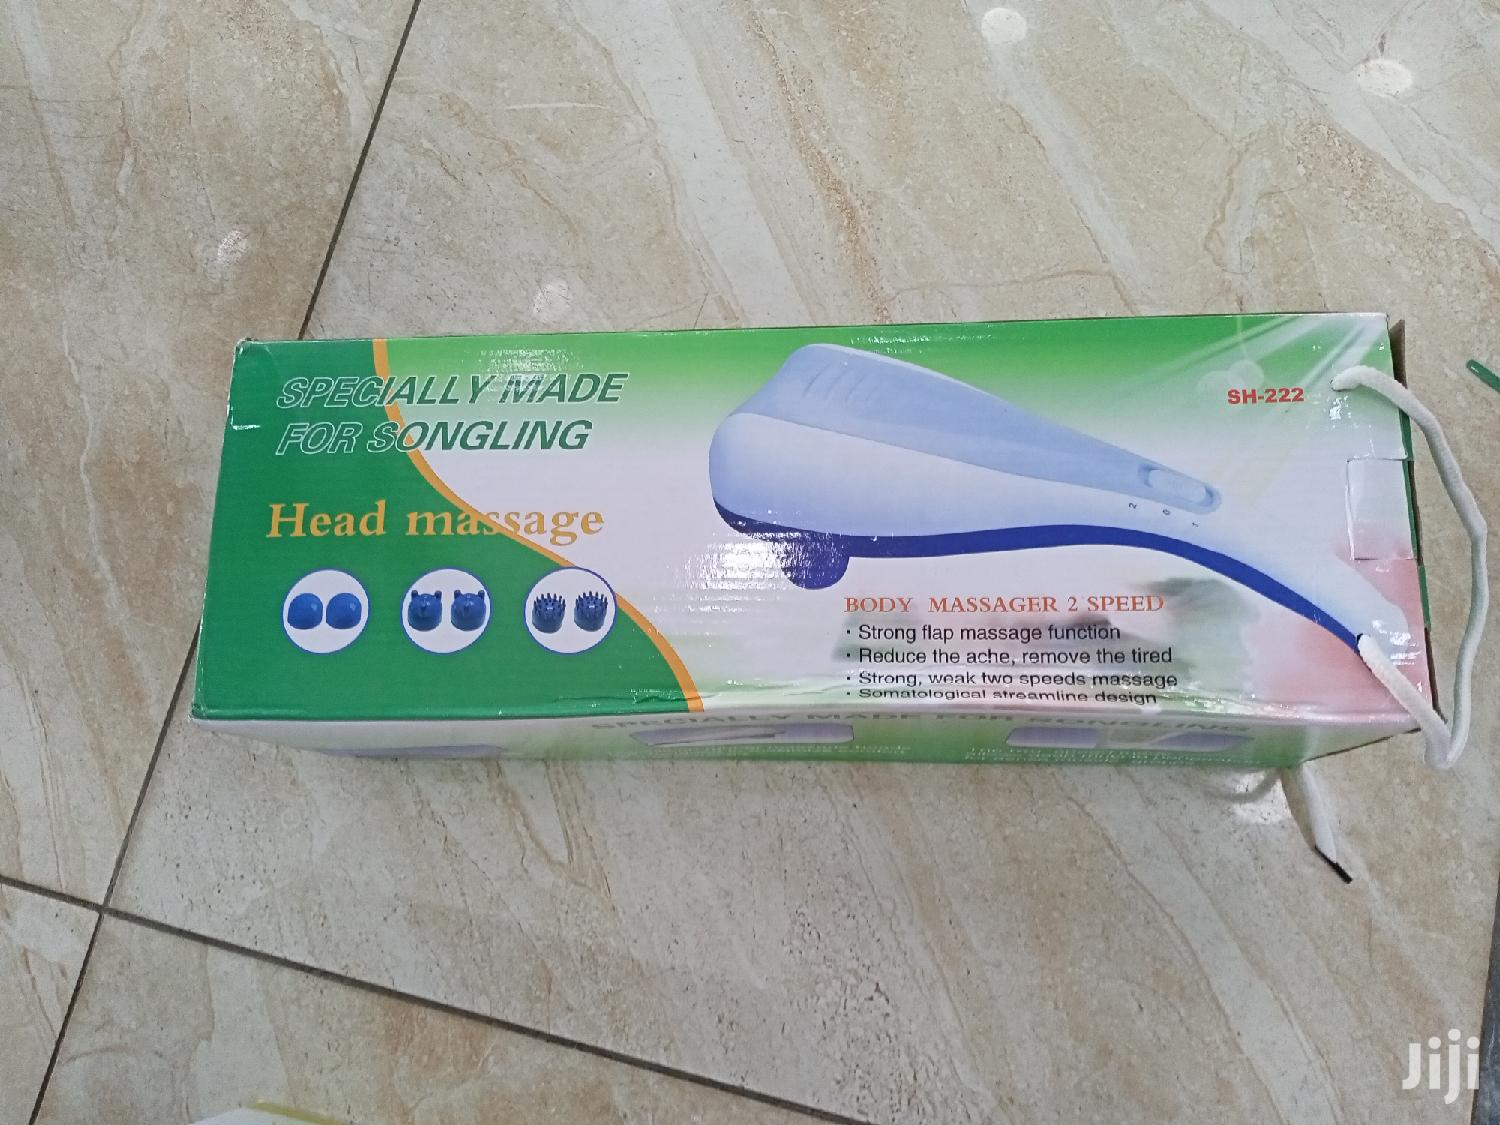 Archive: Double Body Massager